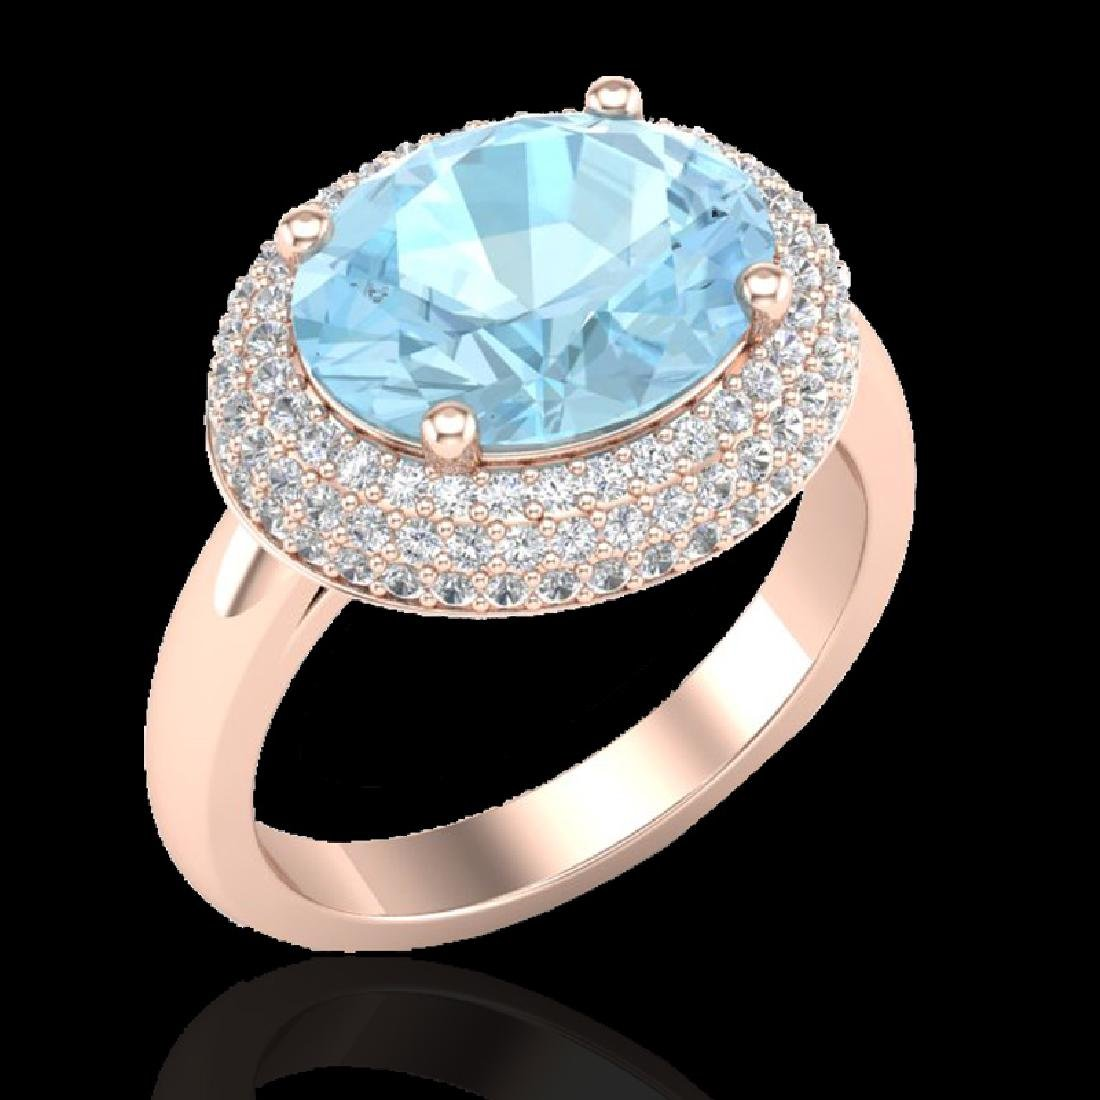 4 CTW Aquamarine & Micro Pave VS/SI Diamond Ring 14K